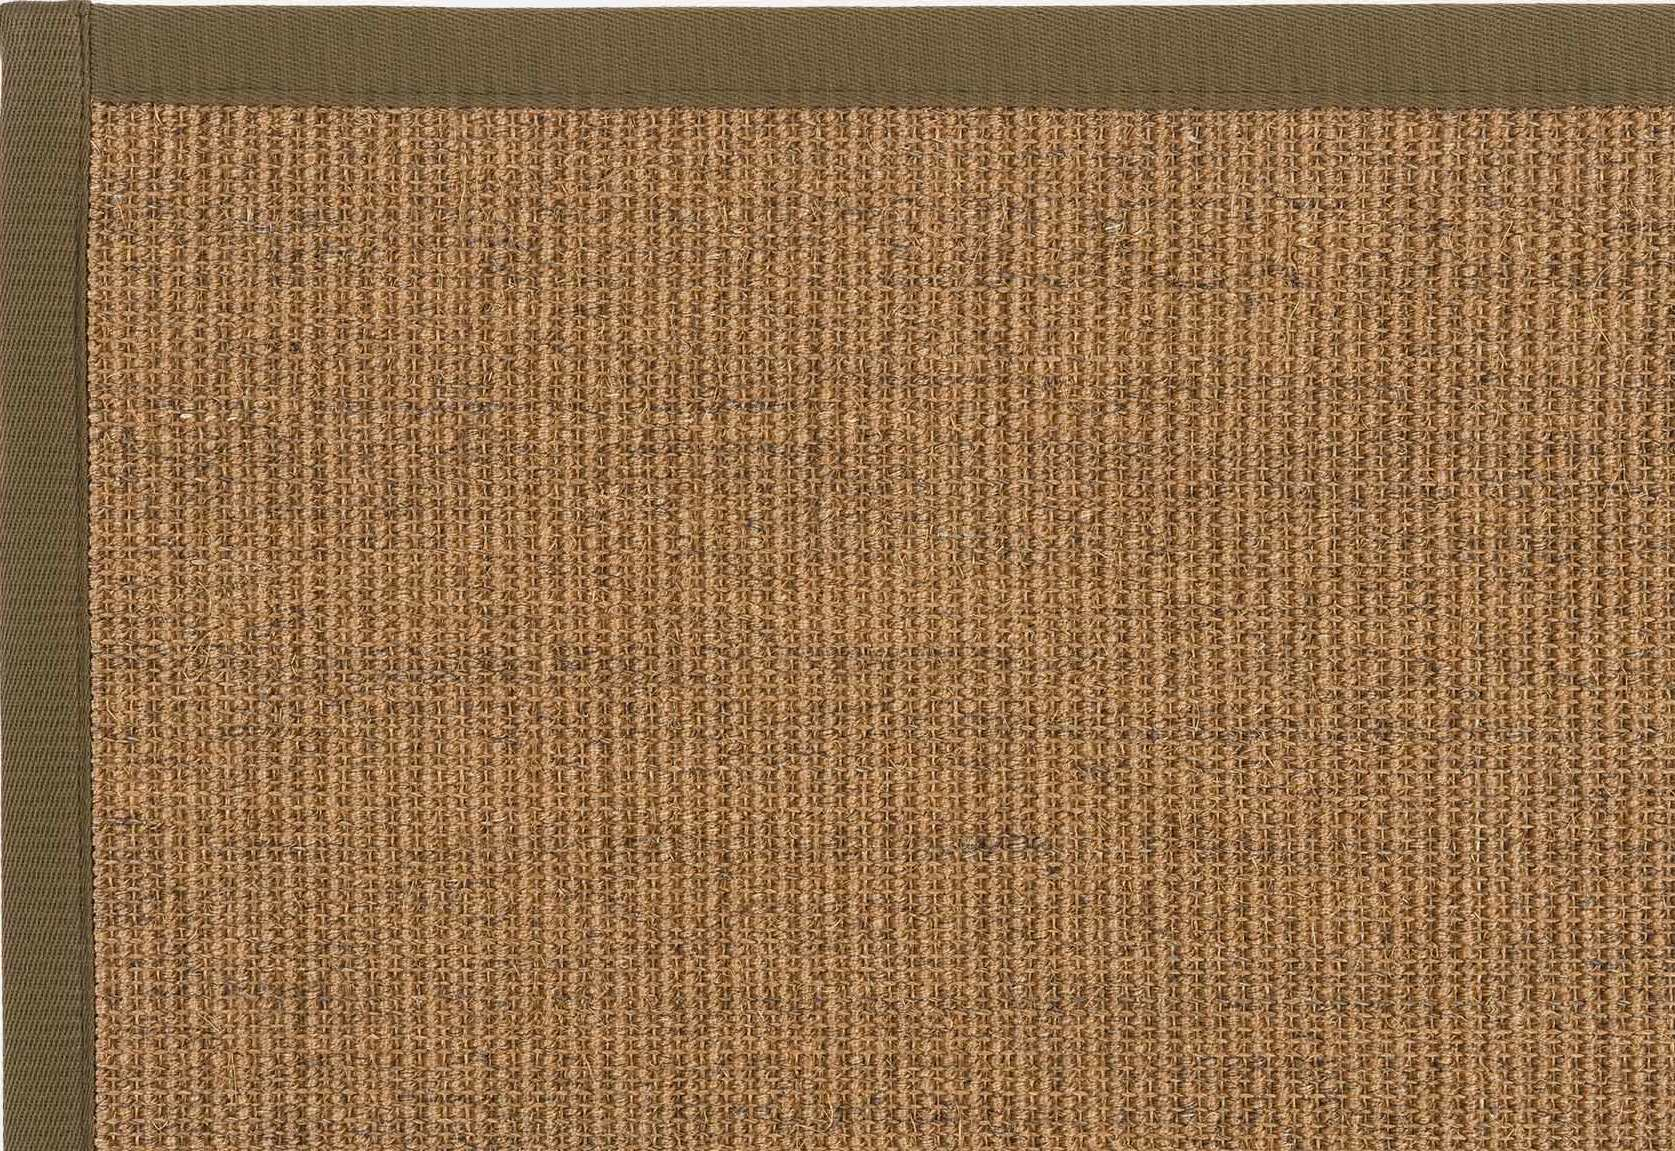 Sisal-65-brown-1